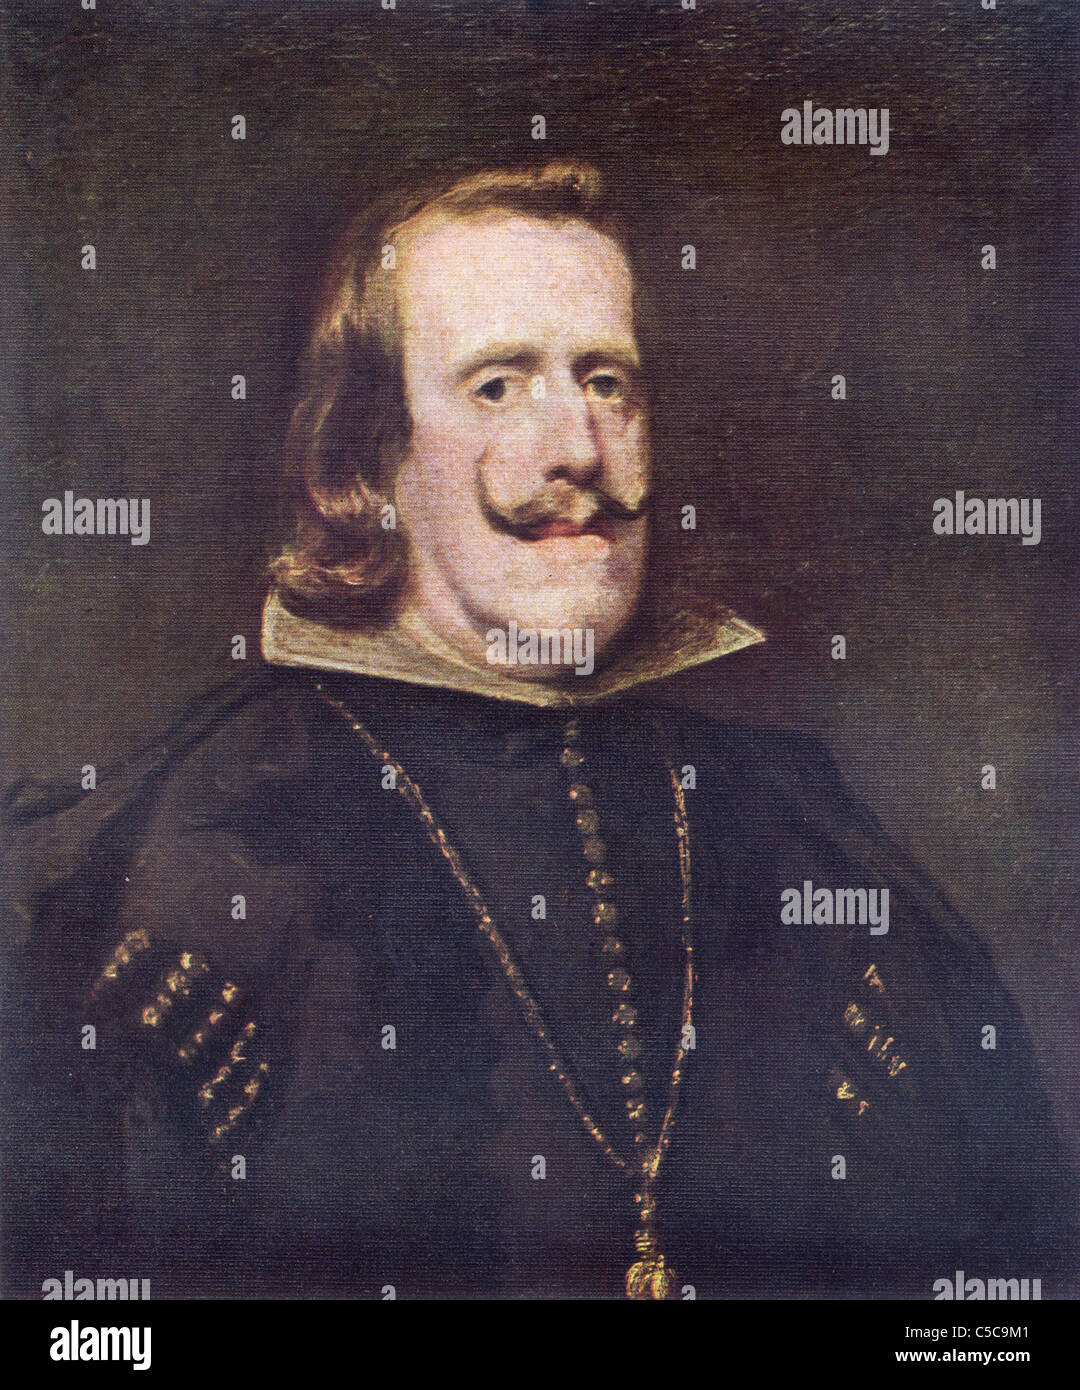 Painting by Diego Velazquez, 'Phillip IV, King of Spain', Spanish School; - Stock Image